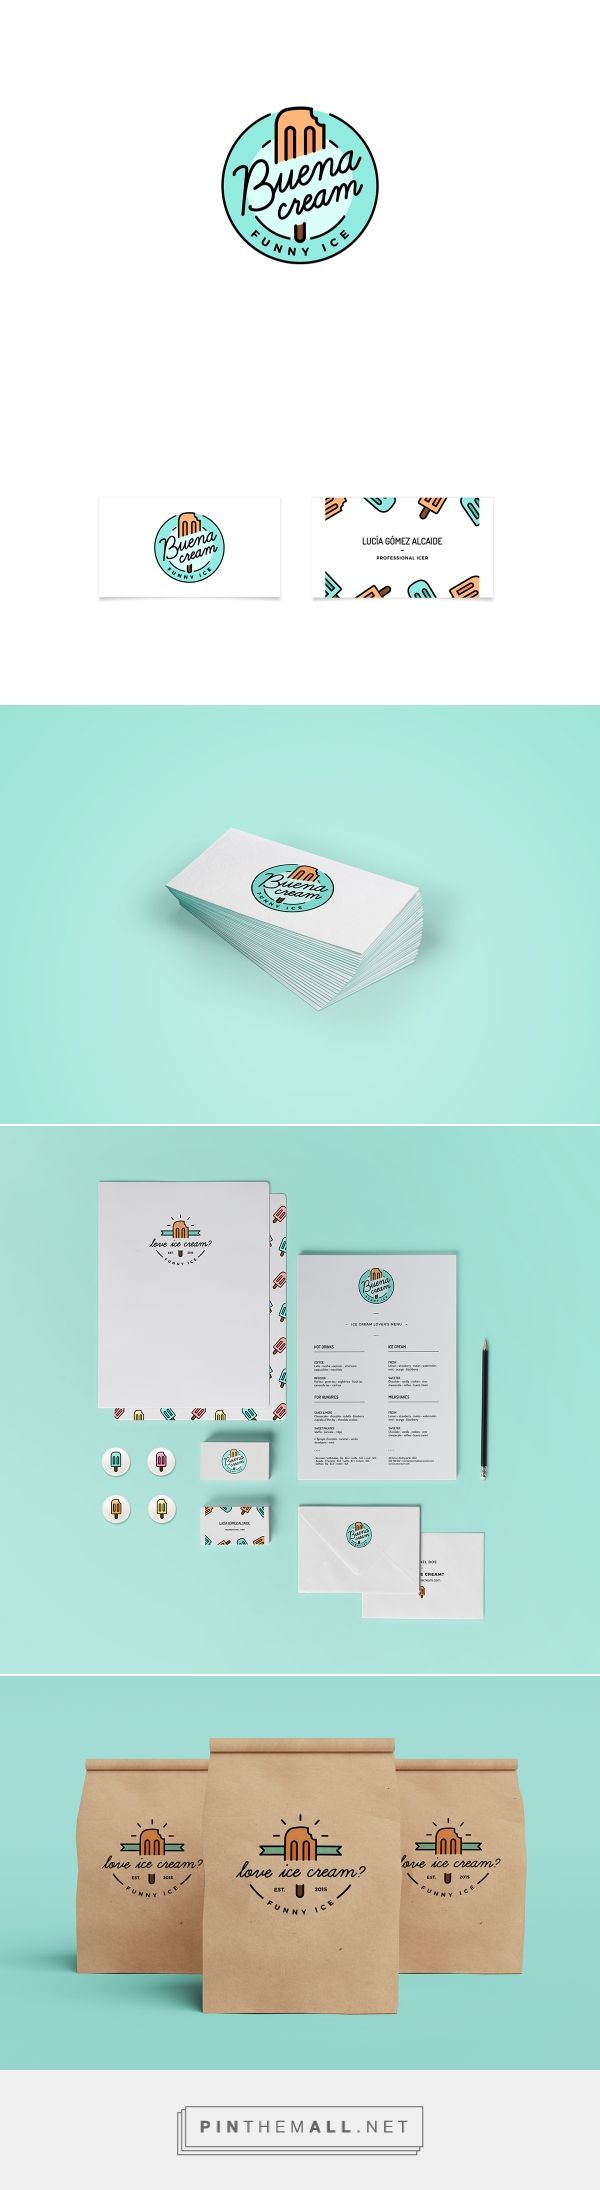 CRITIQUE // Buena Cream Ice Cream Shop Branding by Lucia Gomez | Fivestar Branding Agency